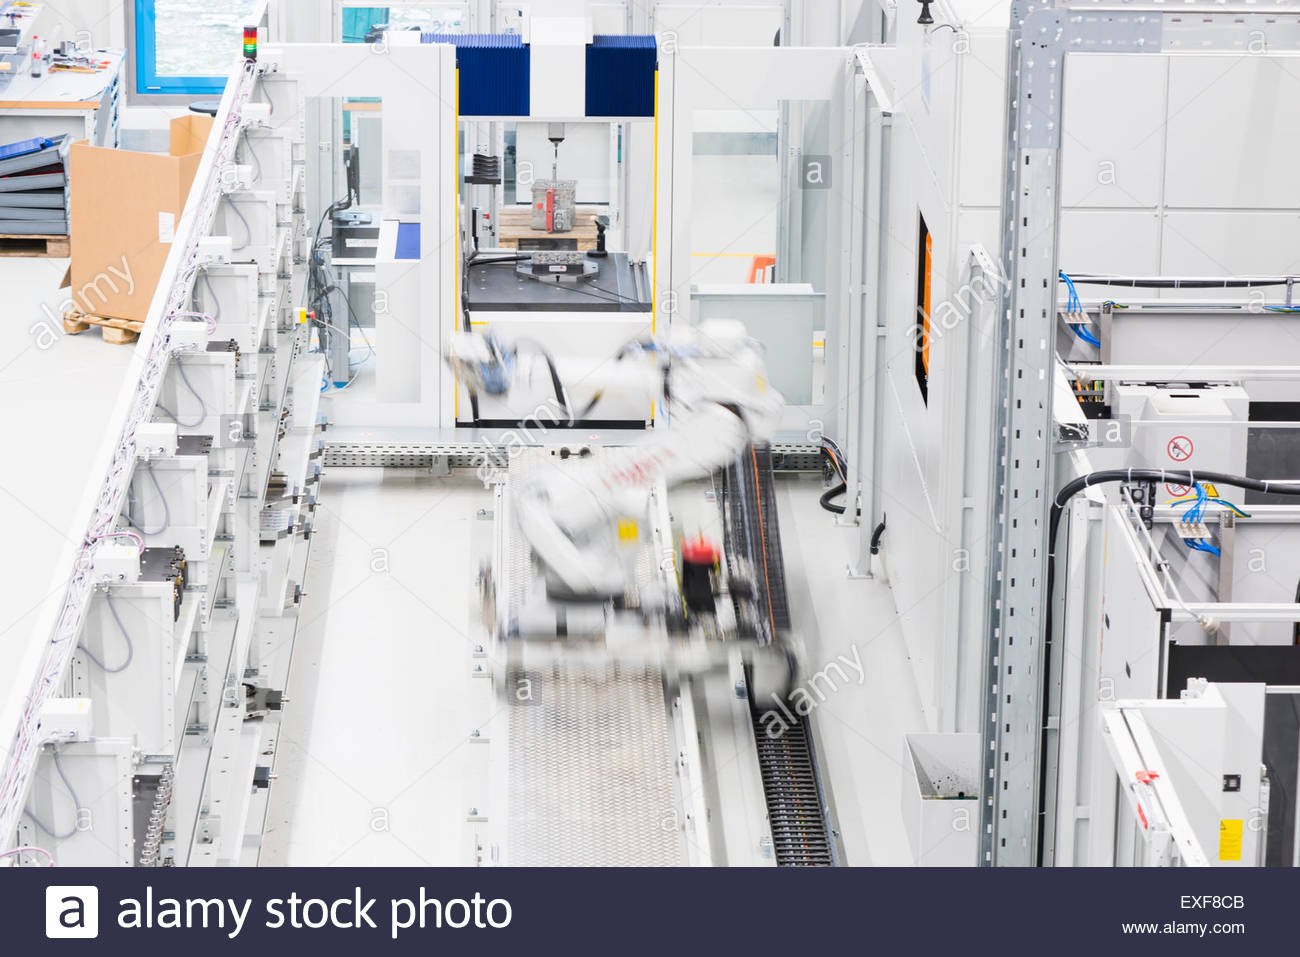 Industrial production line with moving automated robot - Stock Image